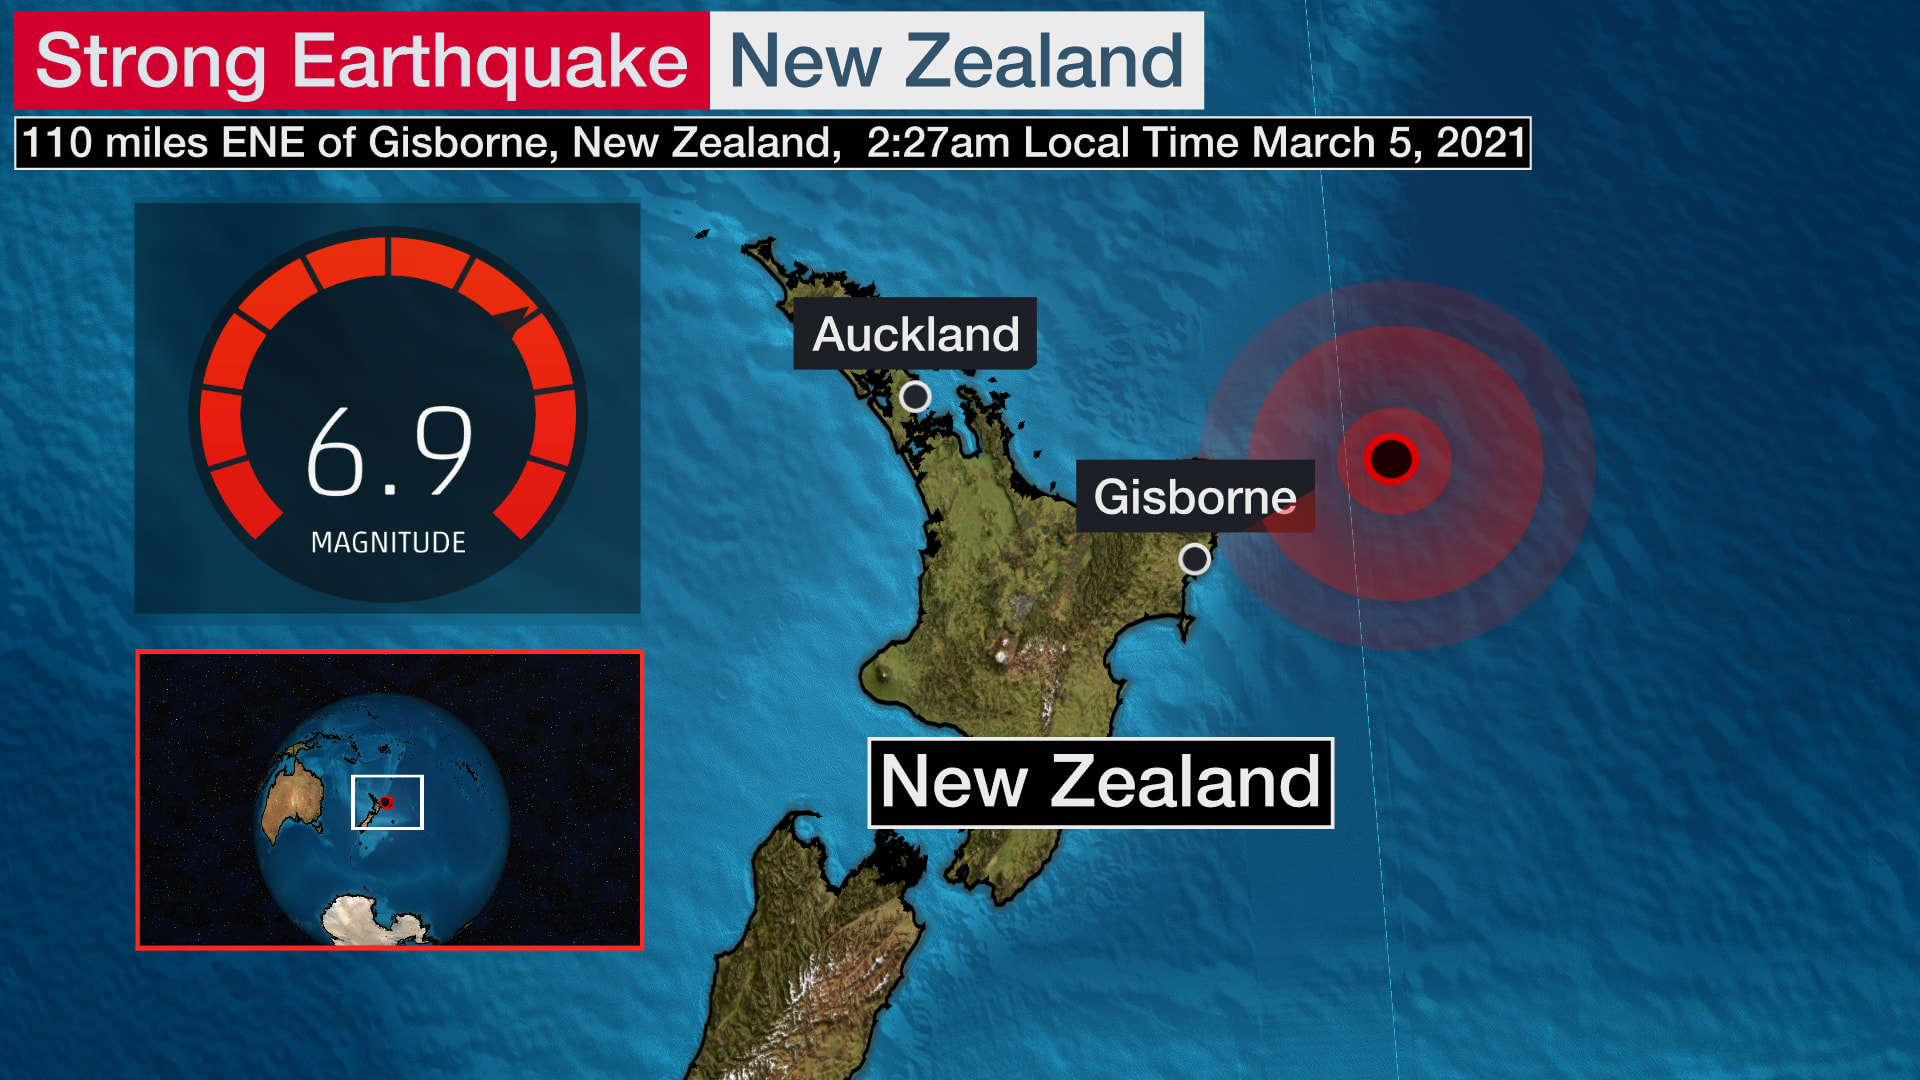 Tsunami Warning Lifted After Strong Earthquake Causes Severe Shaking in New Zealand | The Weather Channel - Articles from The Weather Channel | weather.com